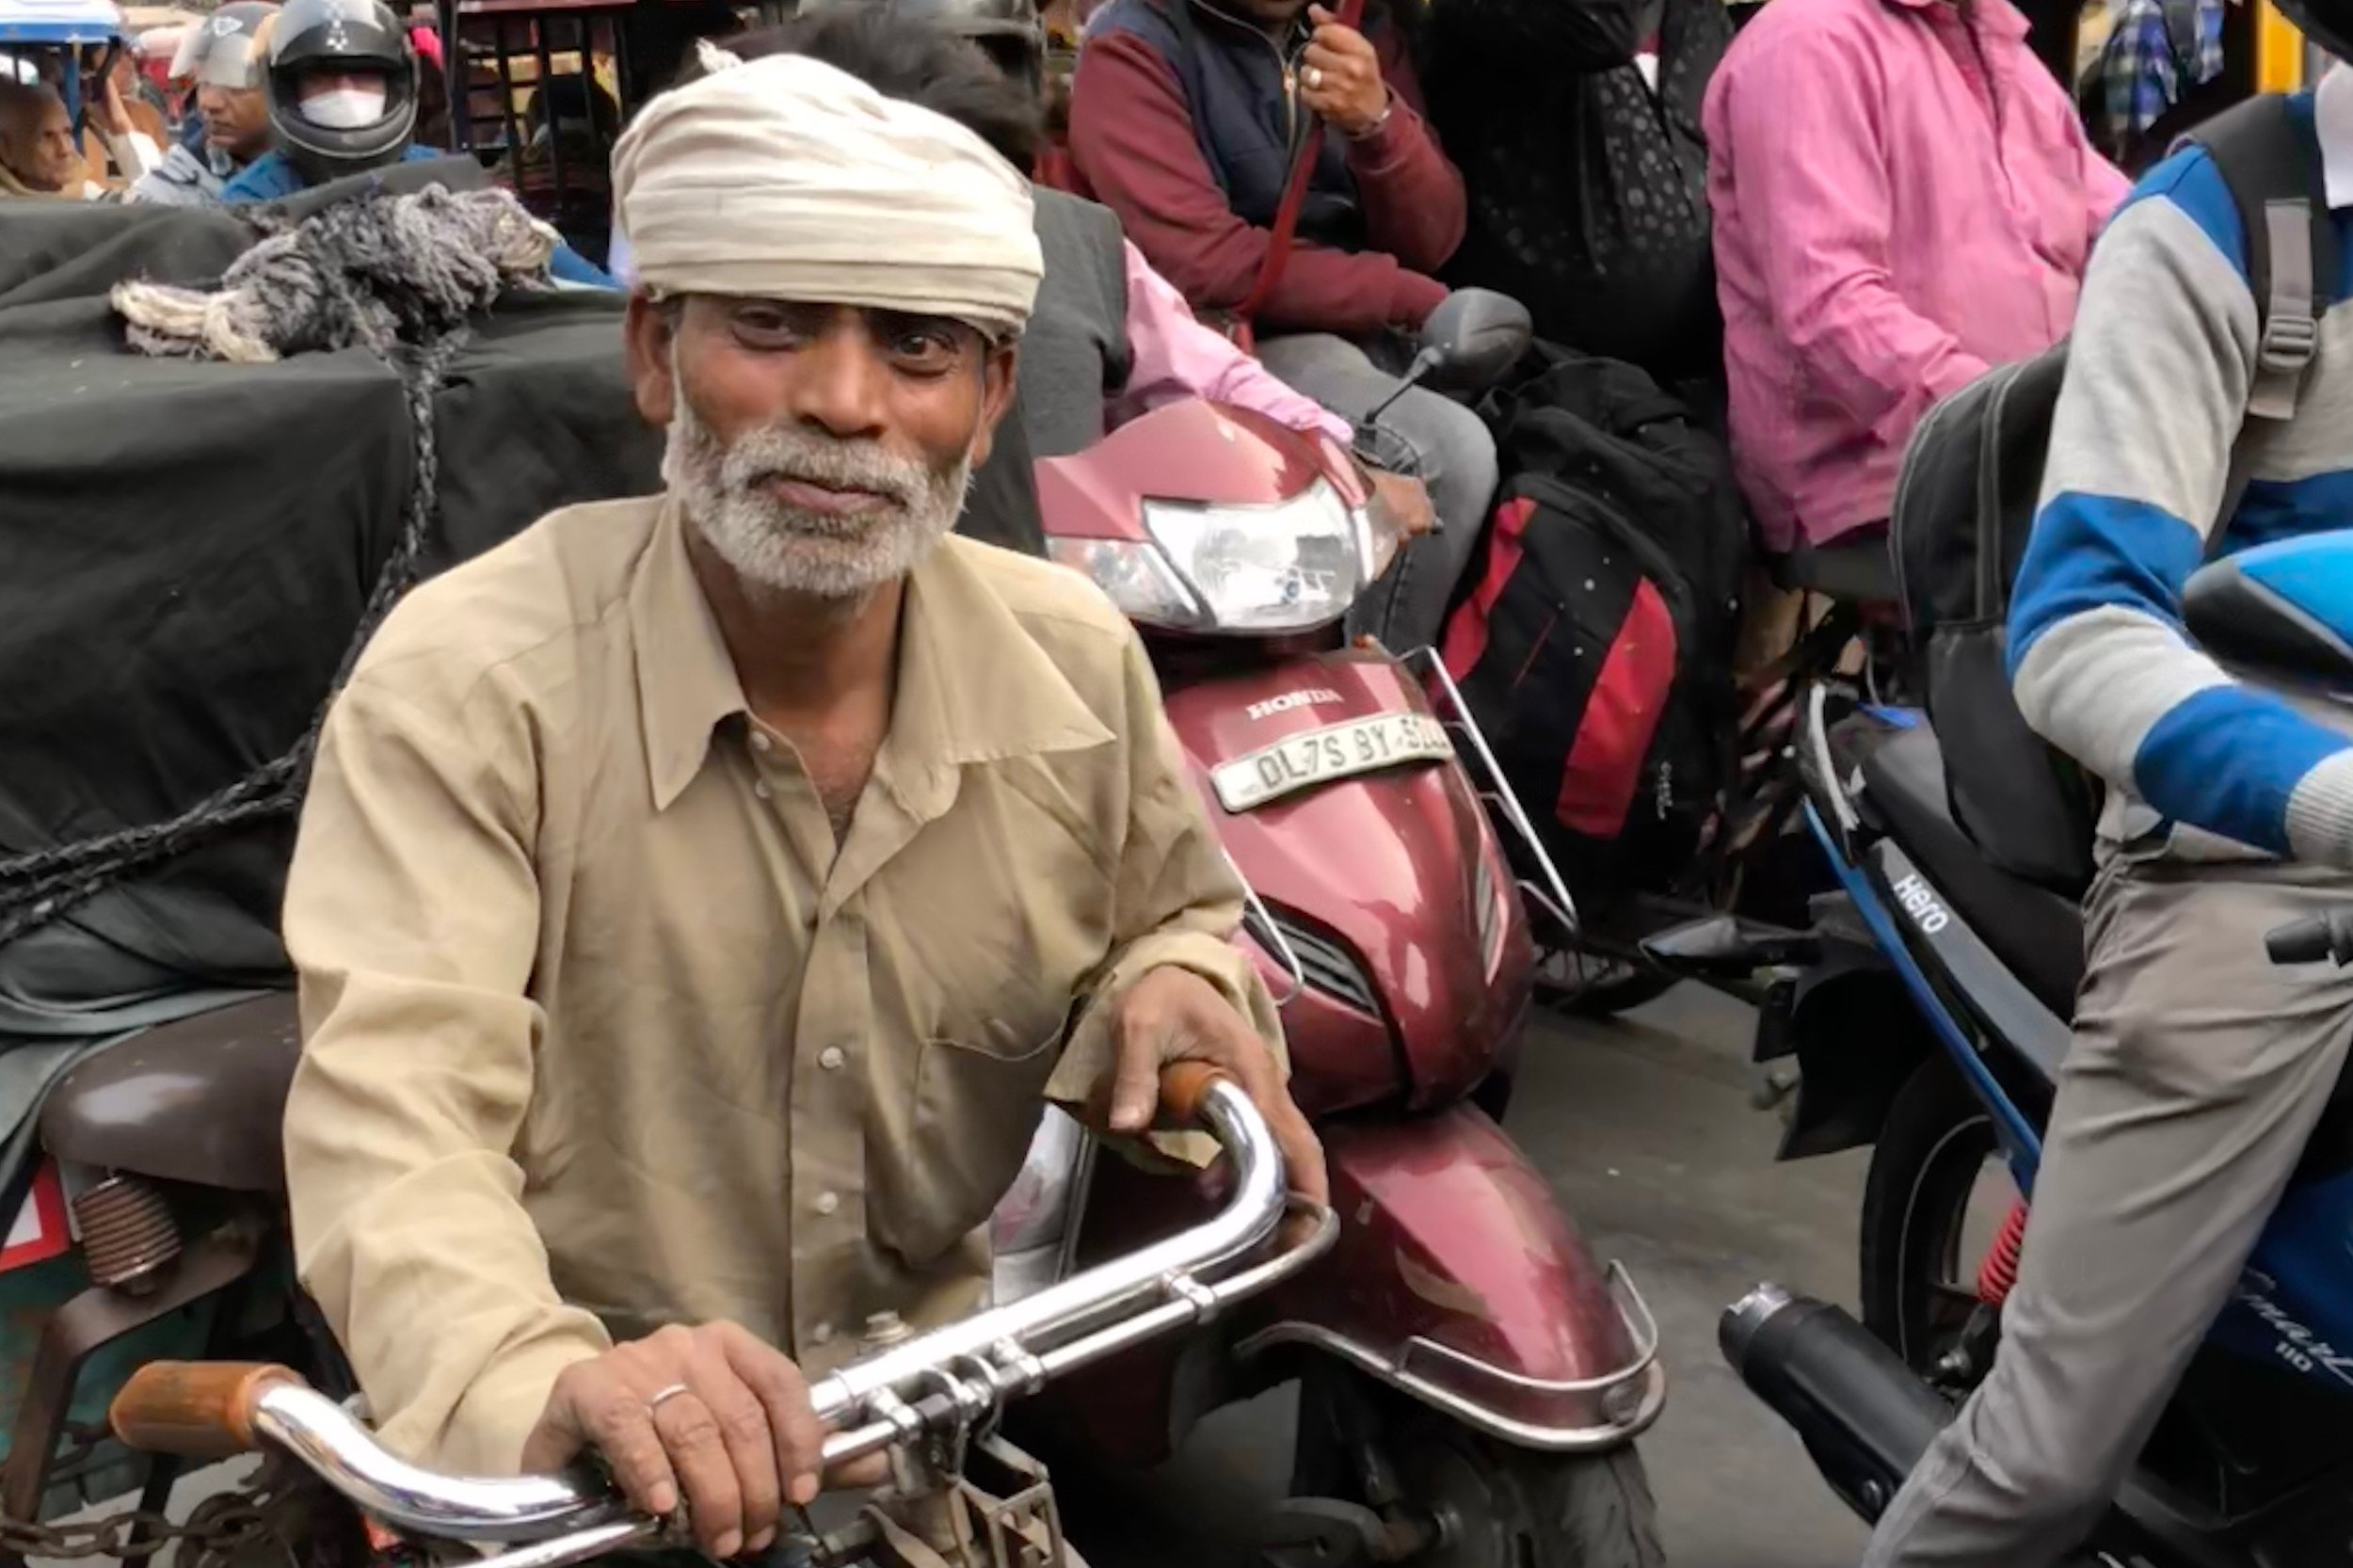 I took this photo, with my subject's permission, while sitting in a traffic jam in Old Delhi, December 2017.